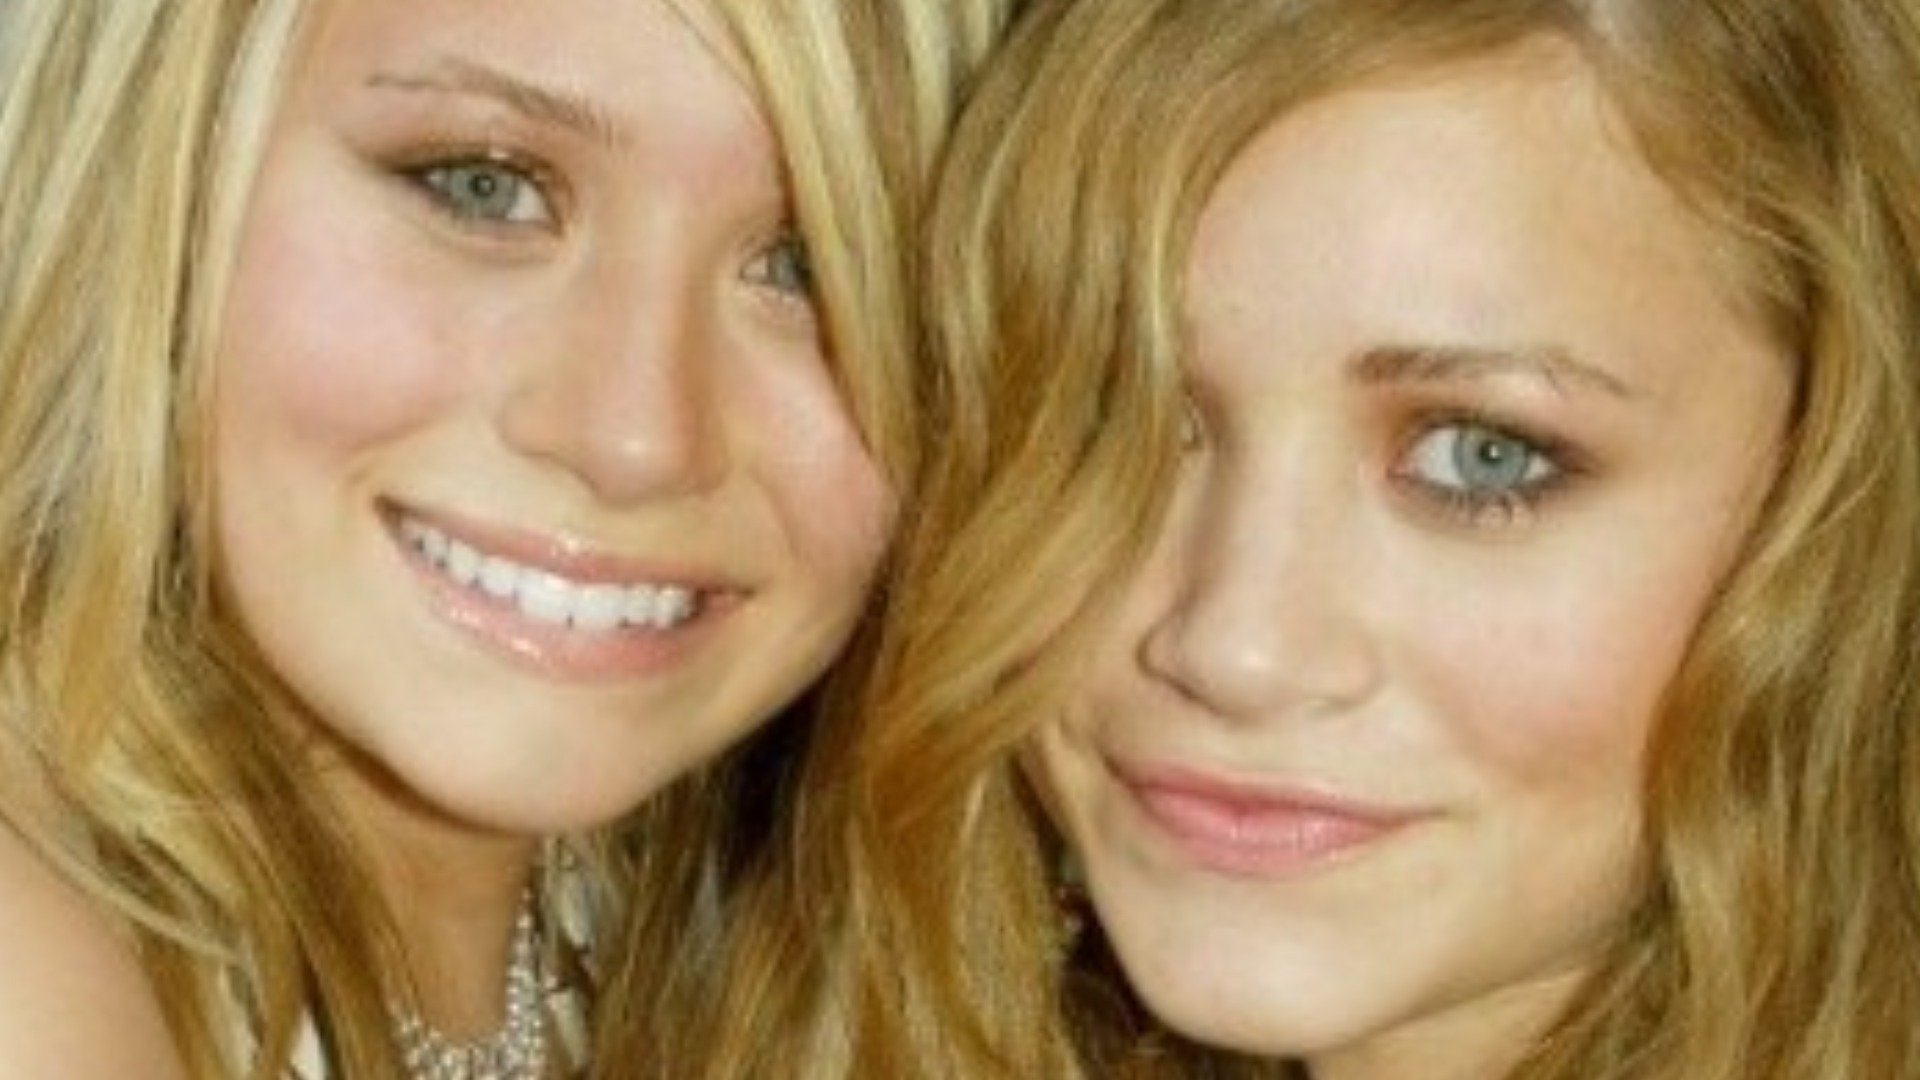 Tragic Details About The Olsen Twins - cover